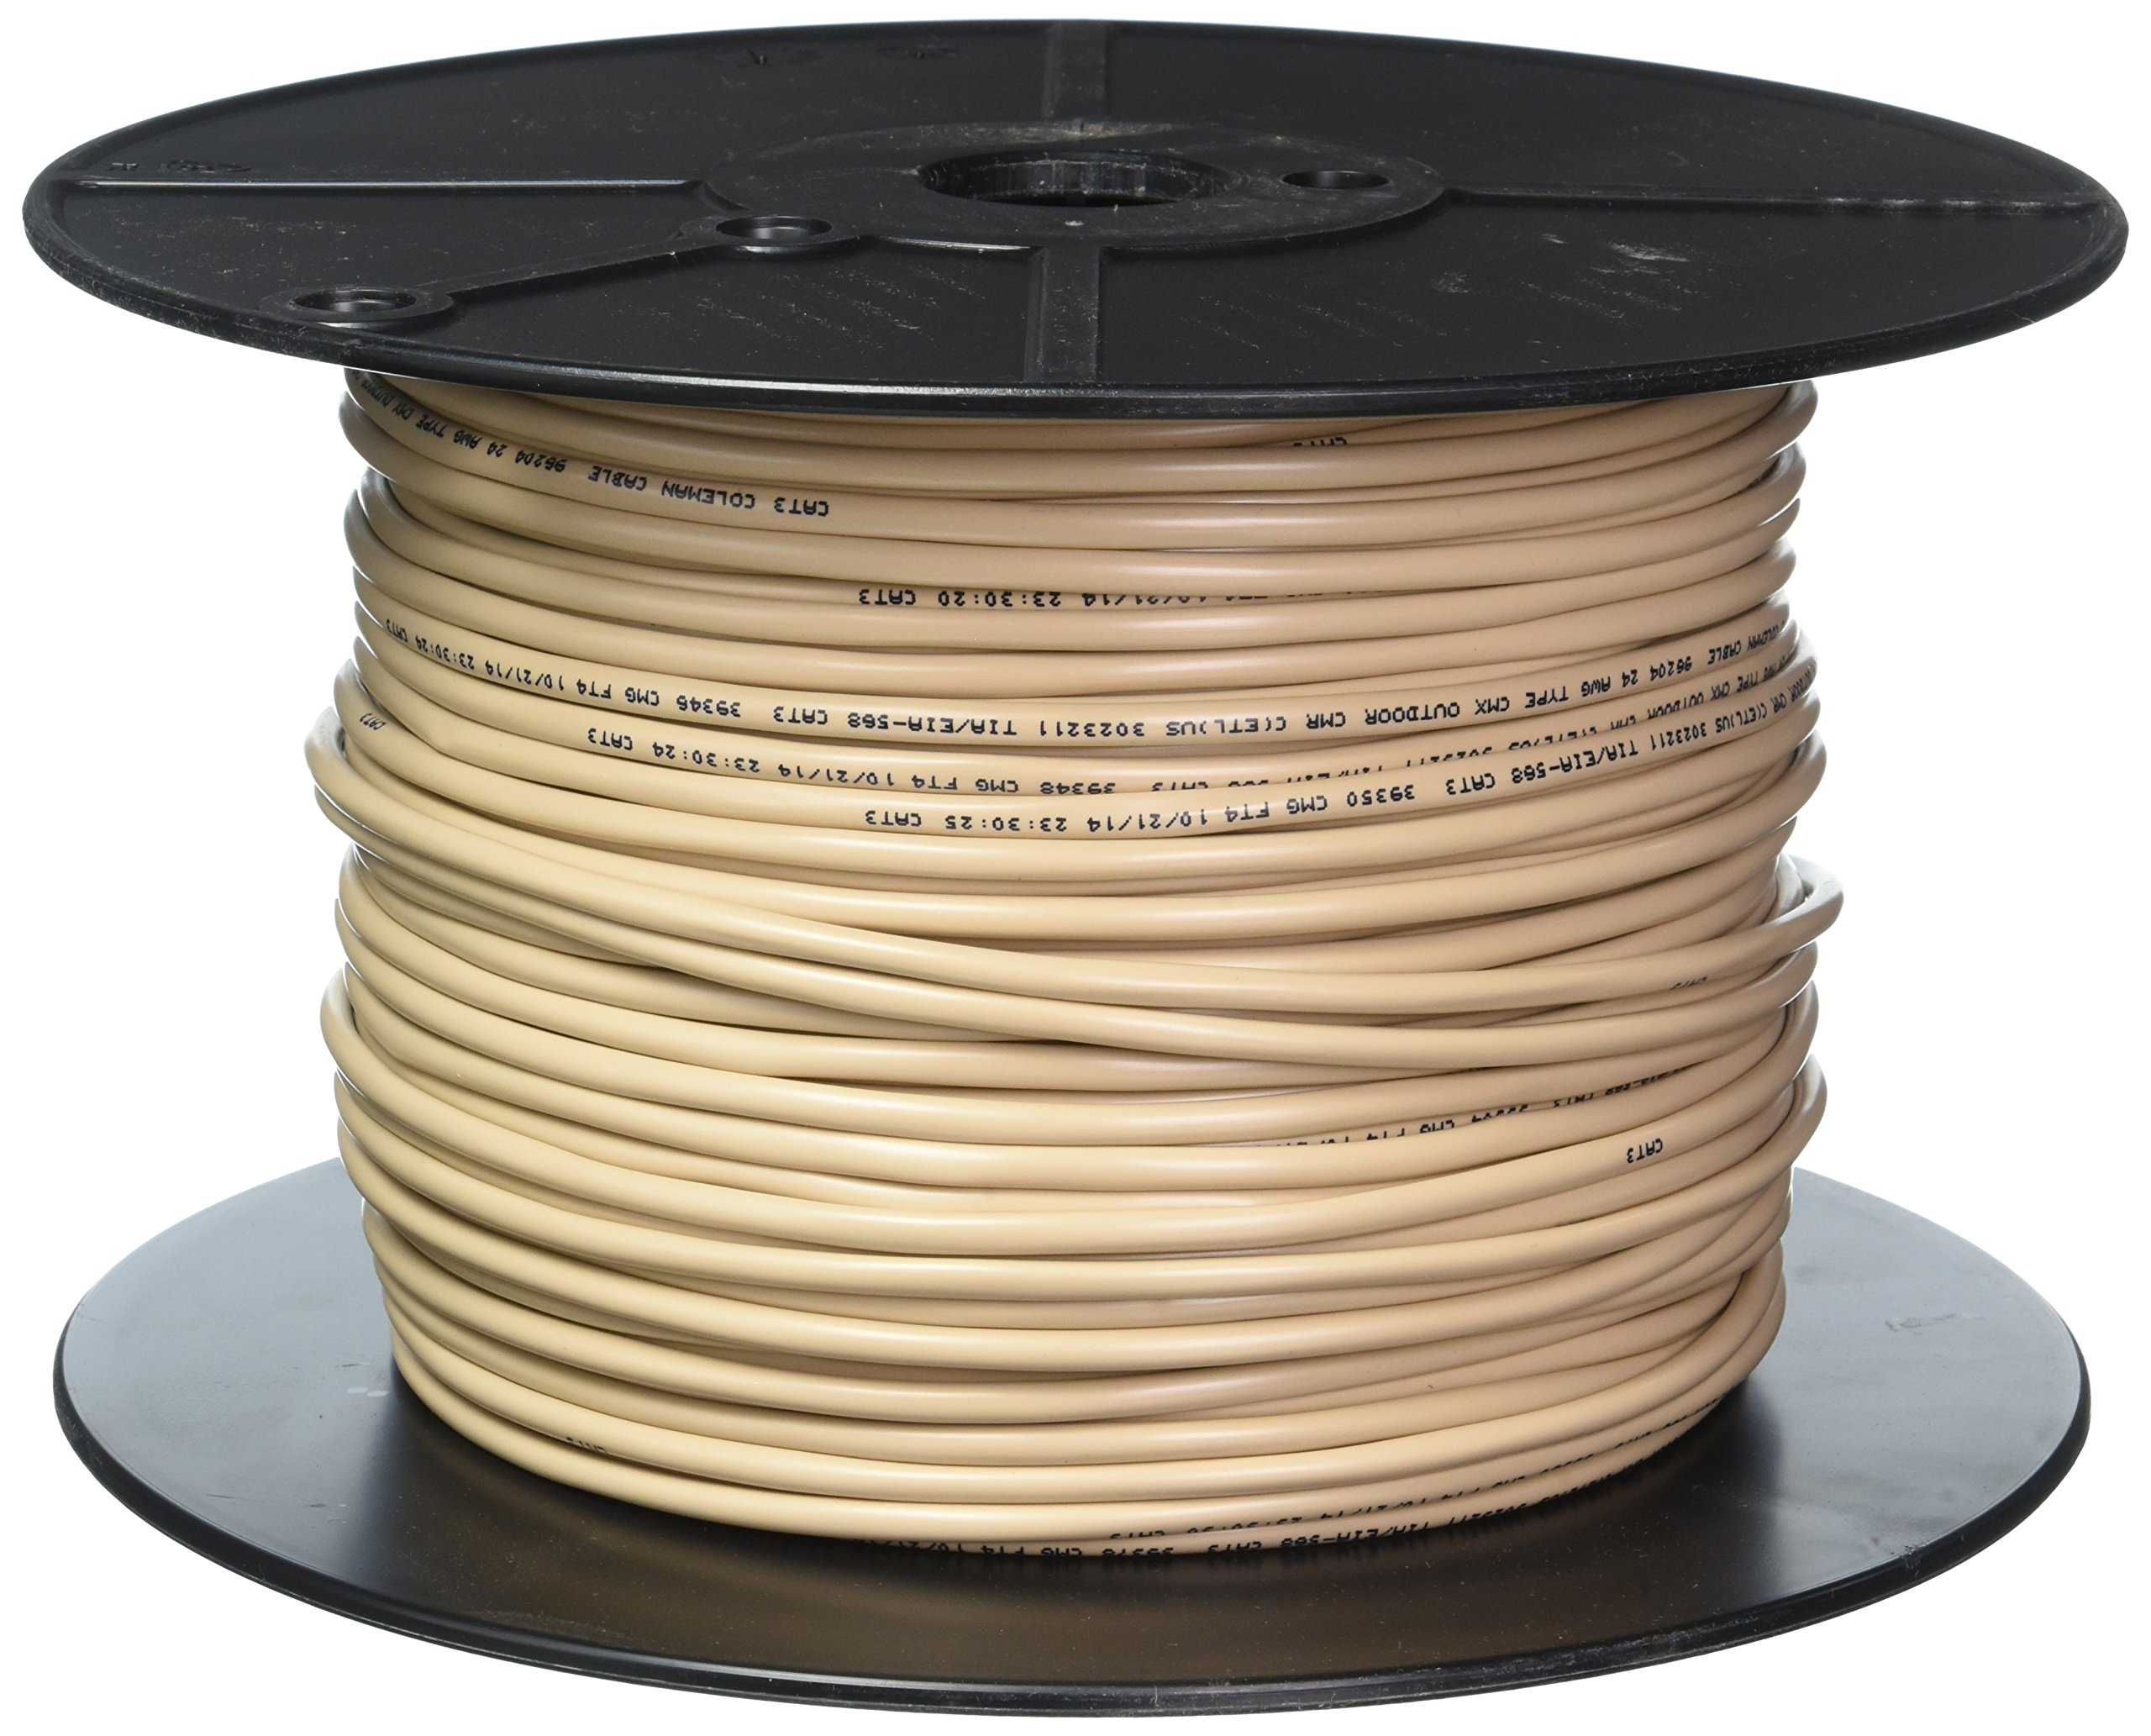 COLEMAN CABLE INC 96204-05-33 24/4 Pair Round Phone Wire, 500-Feet, Beige by Coleman (Image #1)